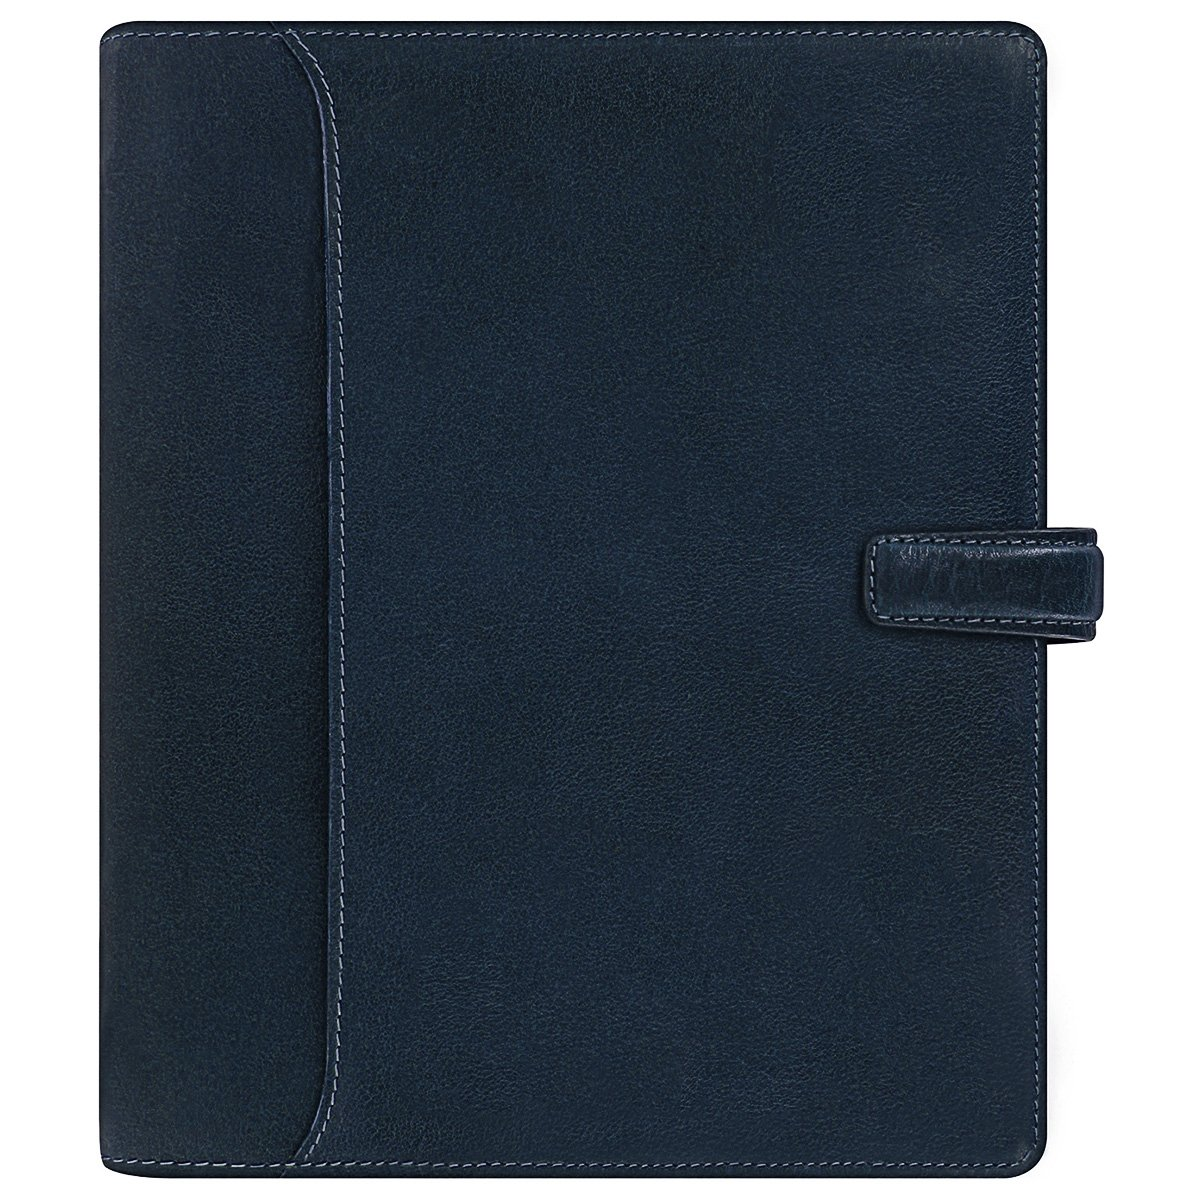 Filofax Lockwood A5 Size 6 Rings Organiser/Agenda Navy Leathe 026058 with Diary 2018